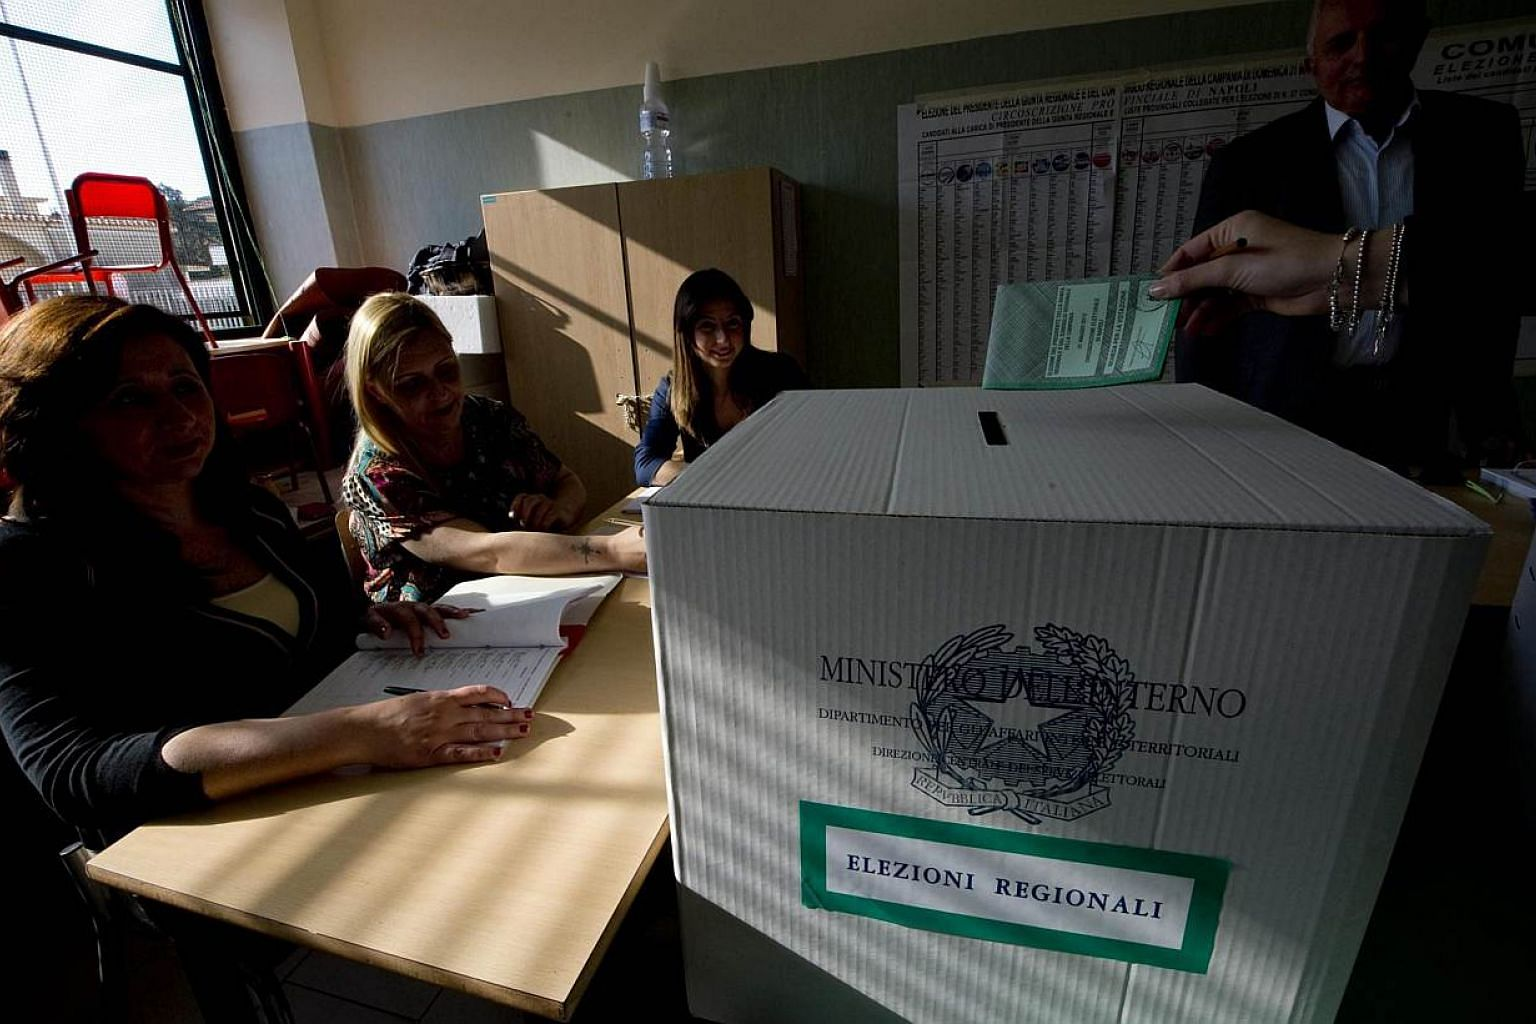 A person casts a vote during regional and municipal elections, at a polling station in Giugliano, near Naples, Italy, on May 31, 2015.Italians voted Sunday in regional elections seen as a key measure of the fading fortunes of ex-premier Silvio